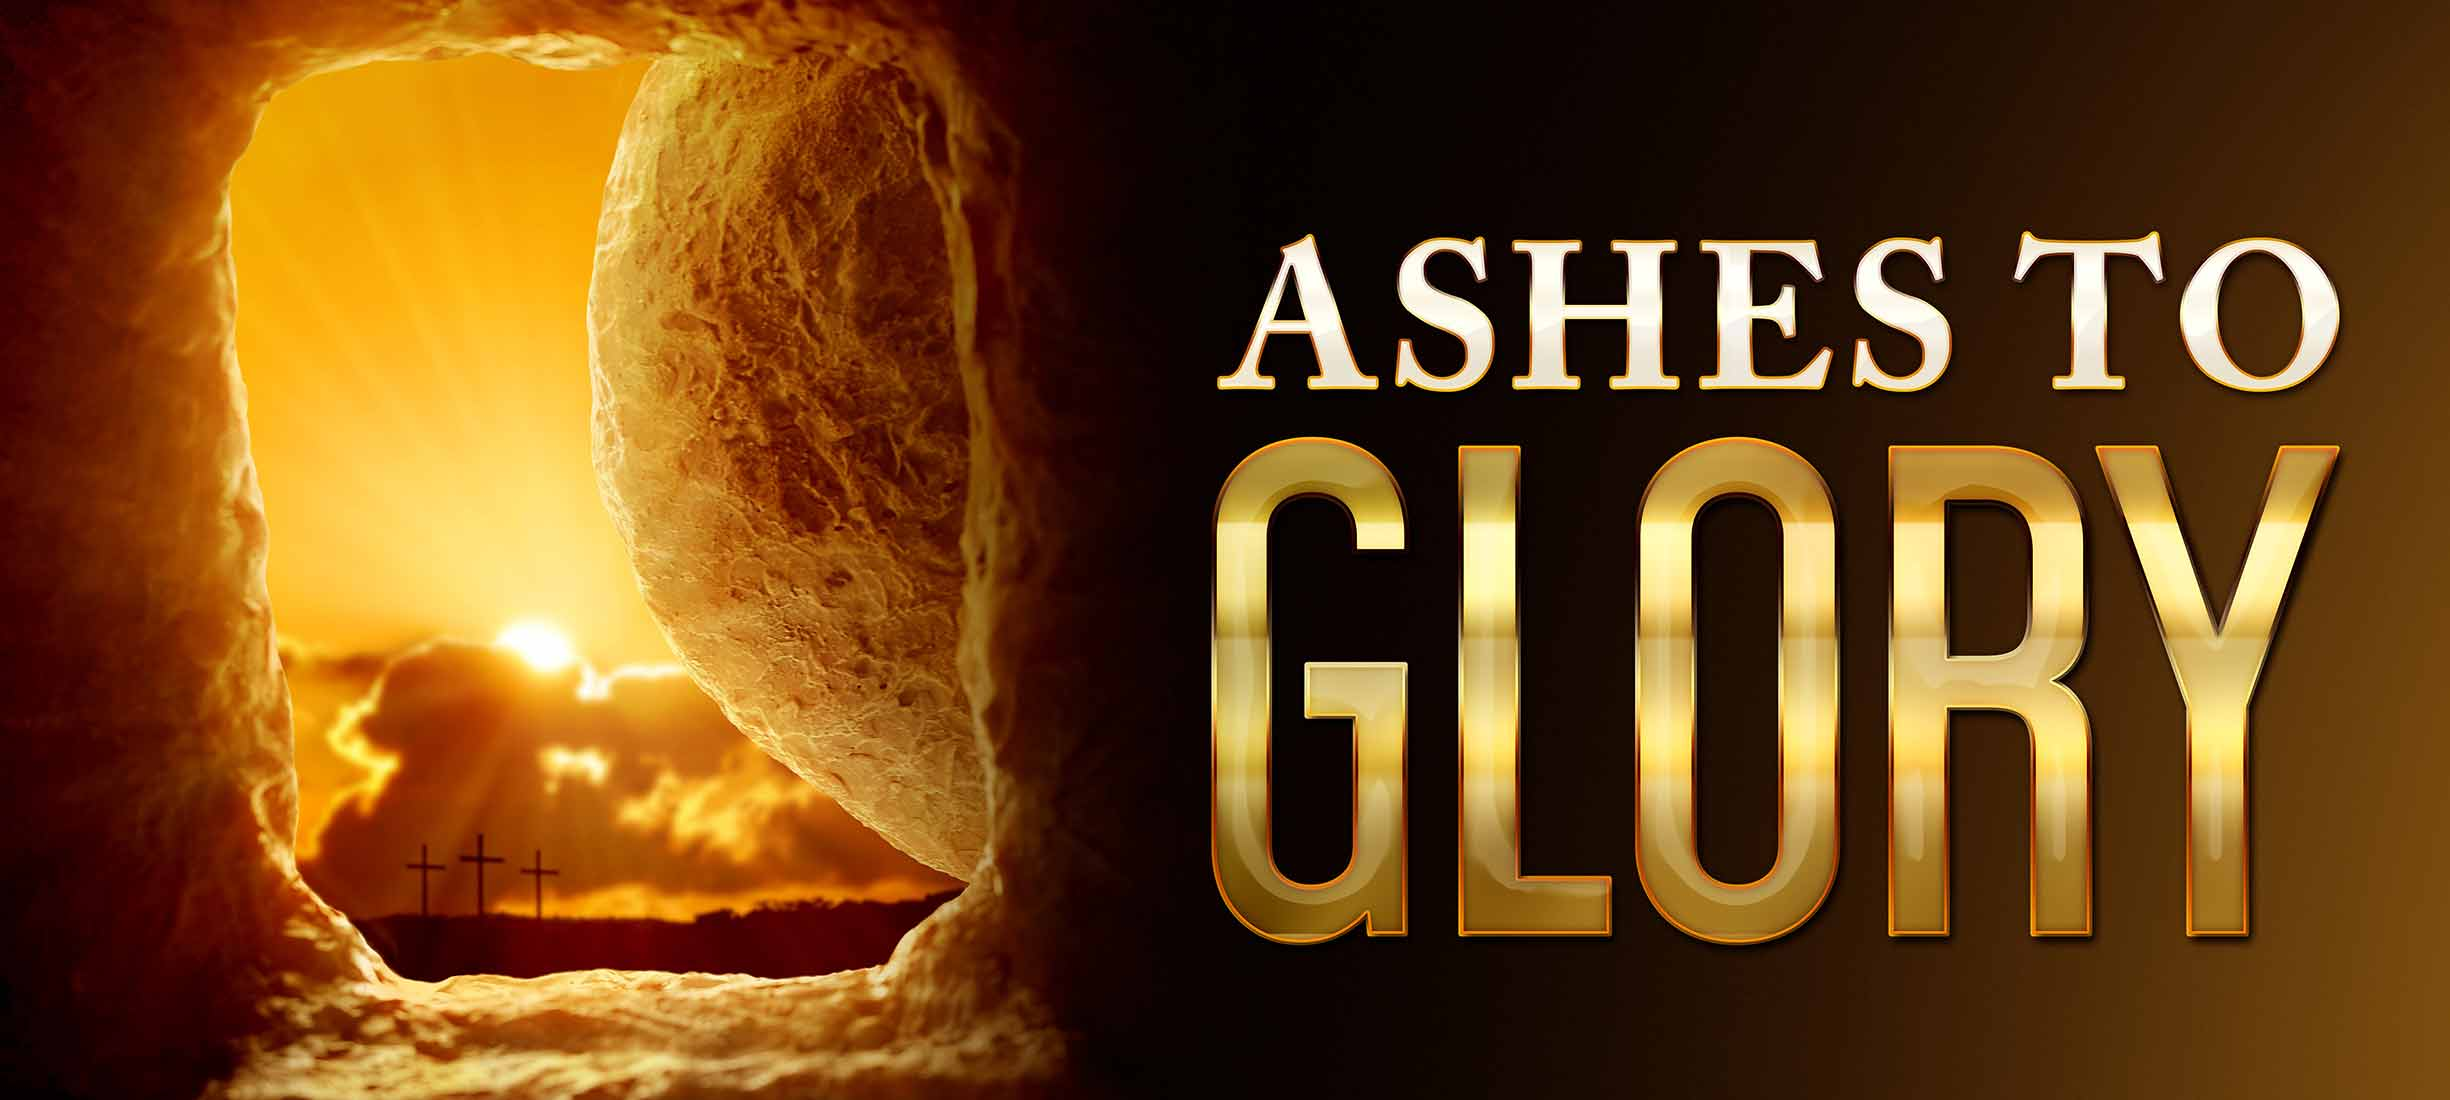 Ashes to Glory: An Easter Devotional